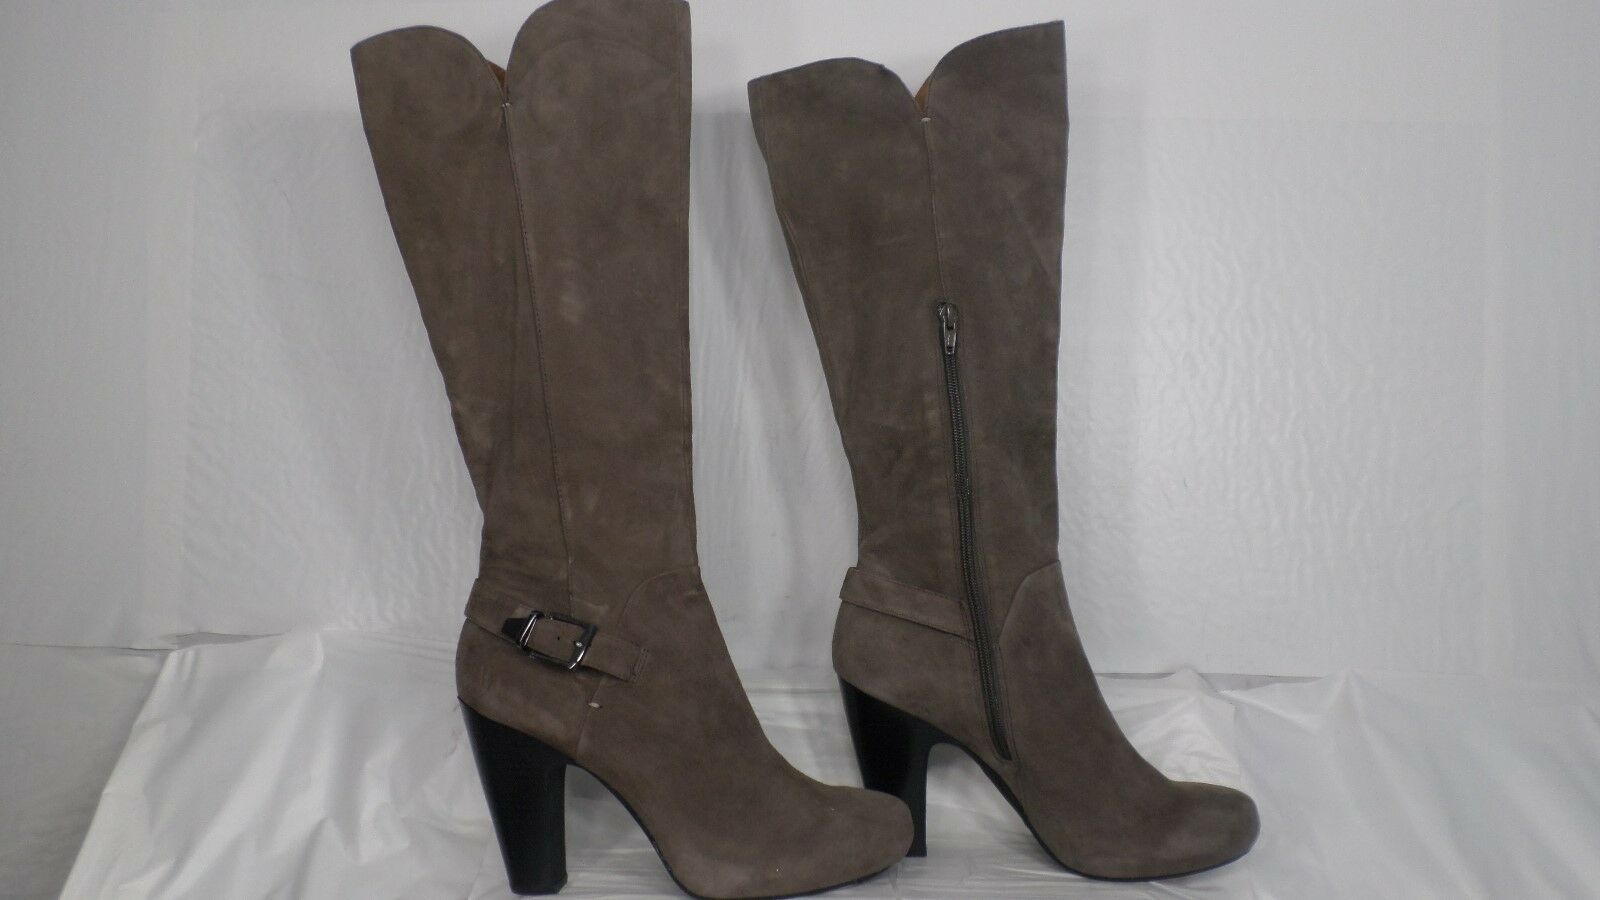 Sofft 'Felicia' Taupe Suede Knee High Dress Boot Women Size 9.5 M